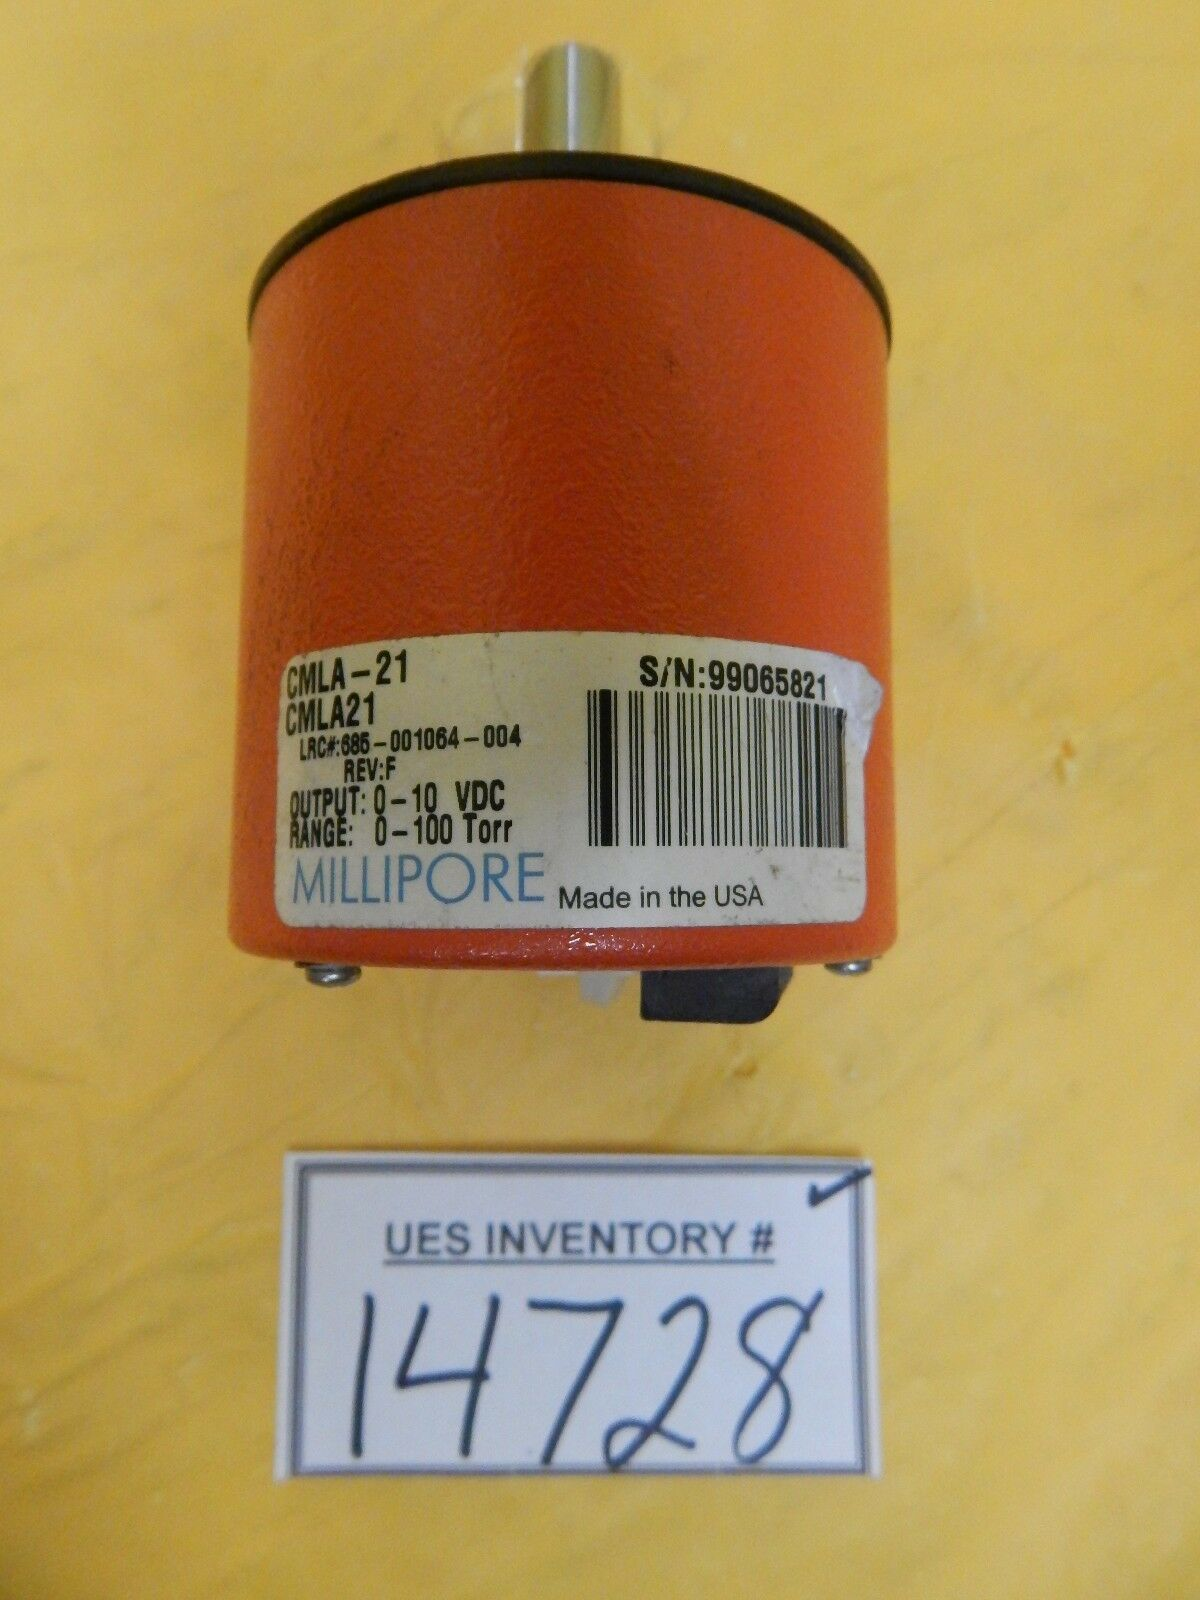 Tylan General CMLA-21 Baratron Lam 853-017643-003-HY-LEAN Used Tested Working